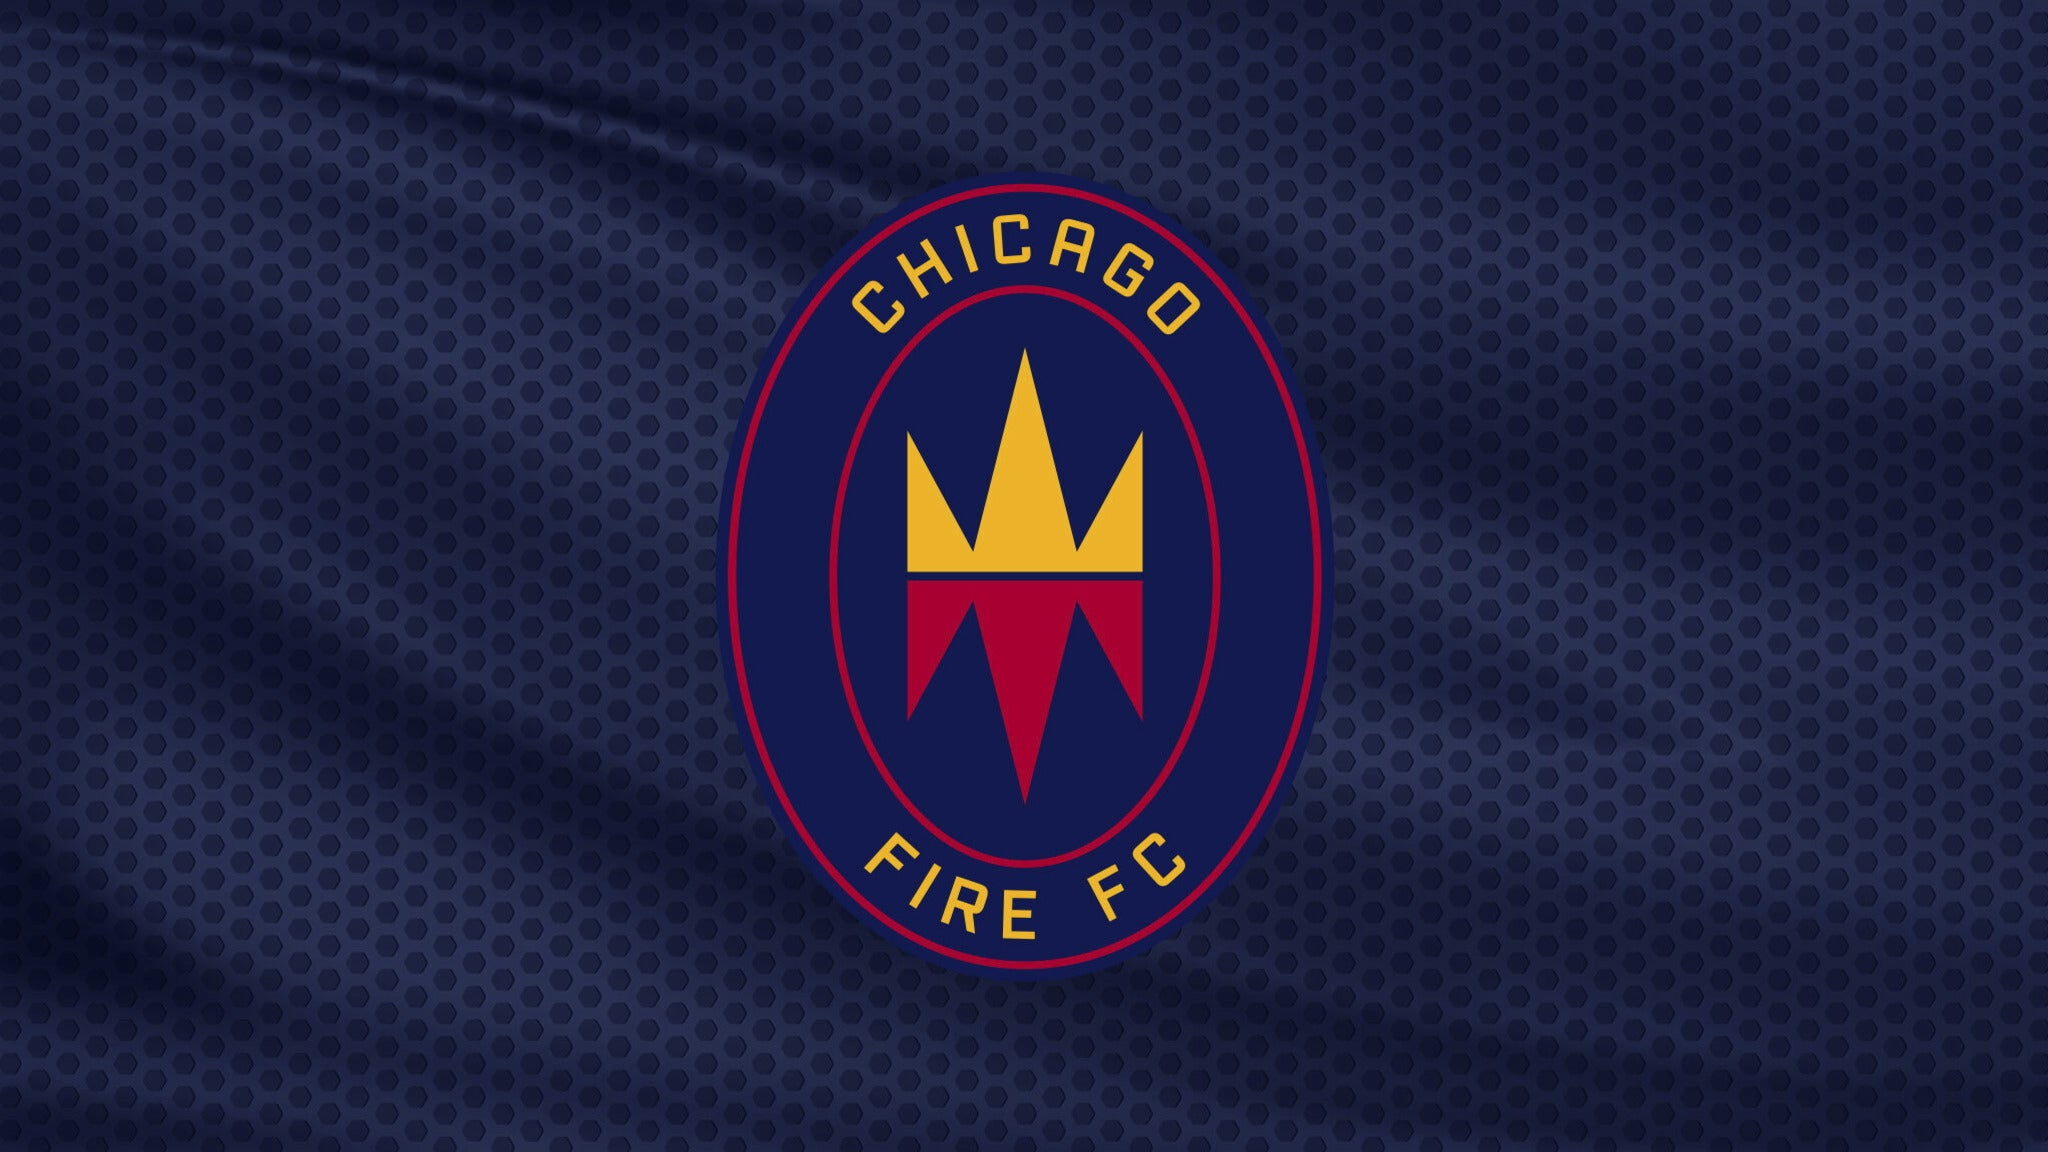 Chicago Fire FC Season Tickets at Soldier Field